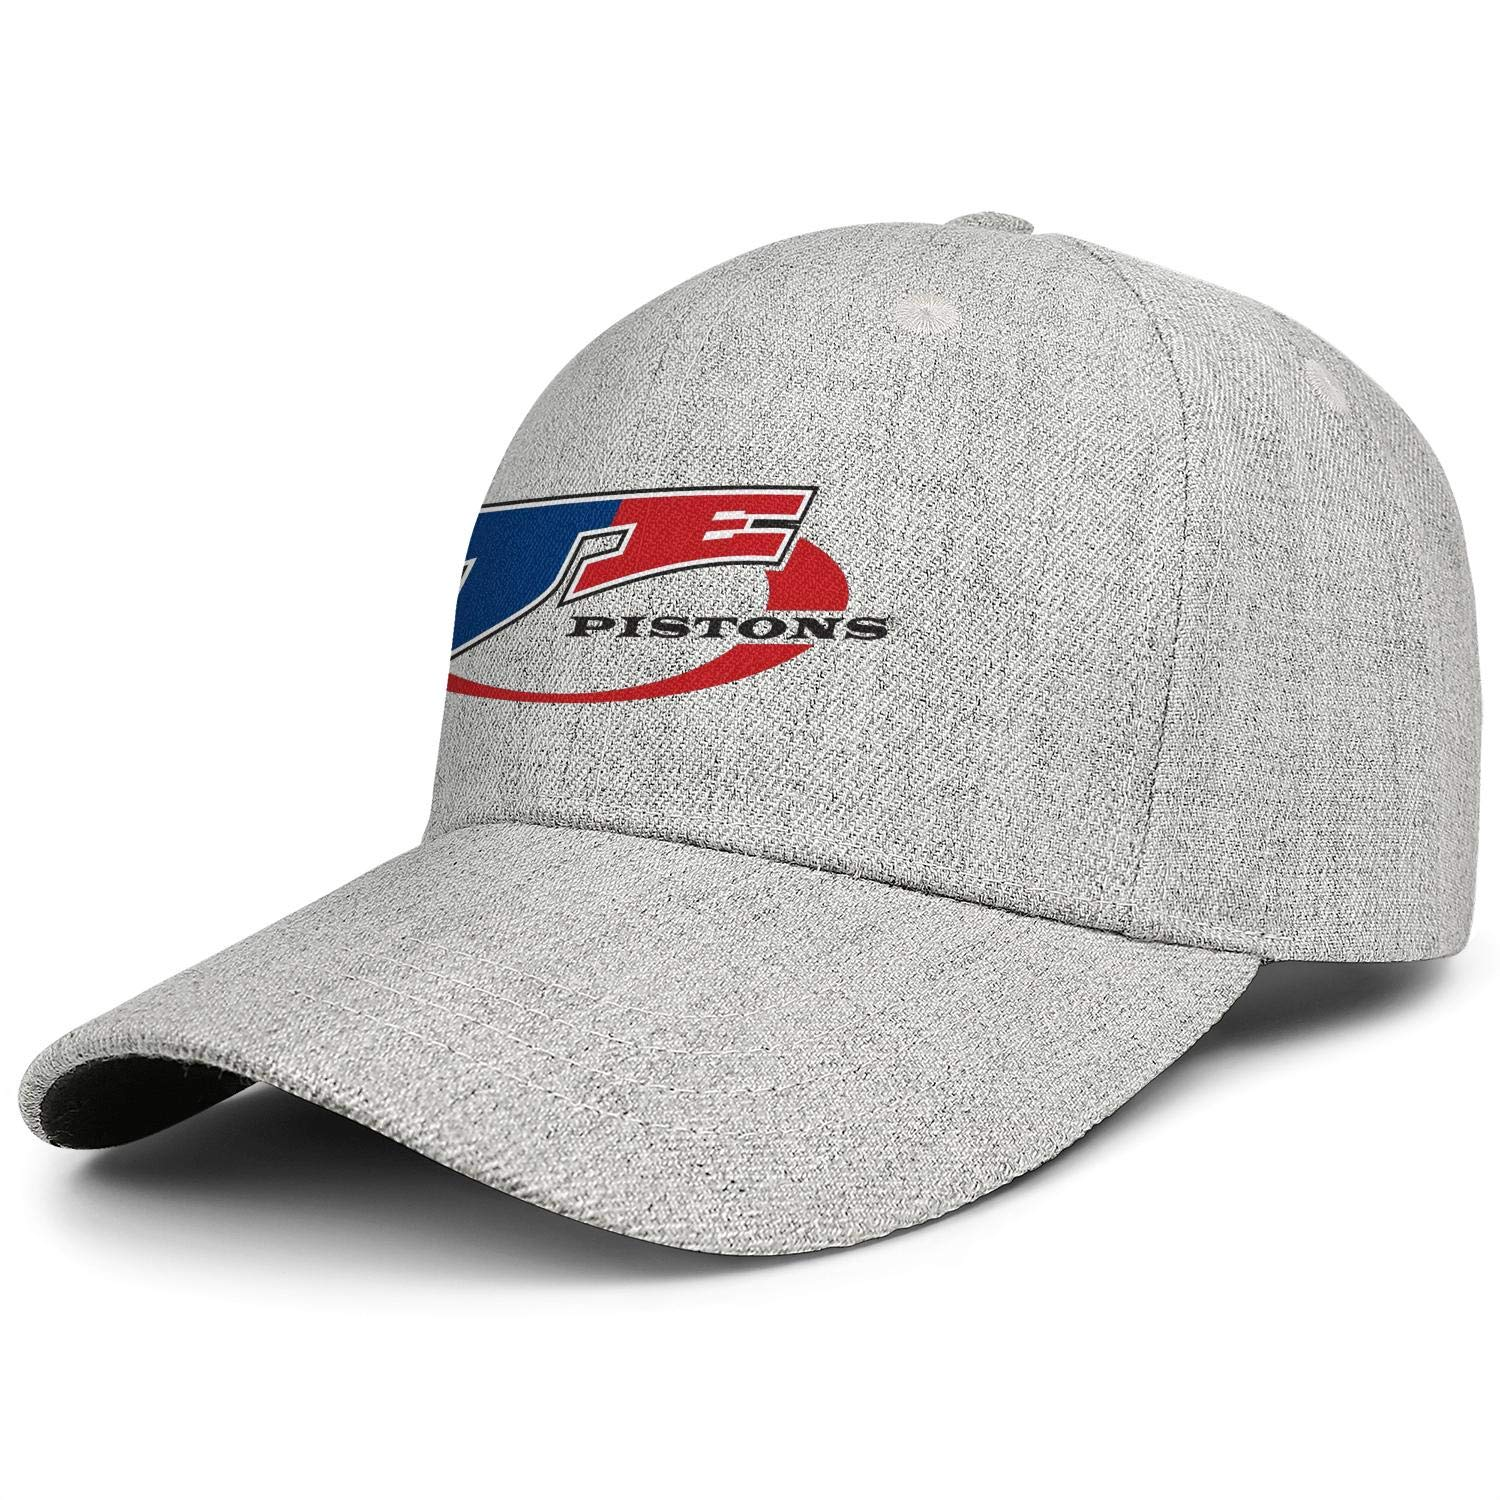 Adjustable Wool Blend Baseball Caps Mens Womens Relaxed Visor Hats JE-Pistons-Competitors